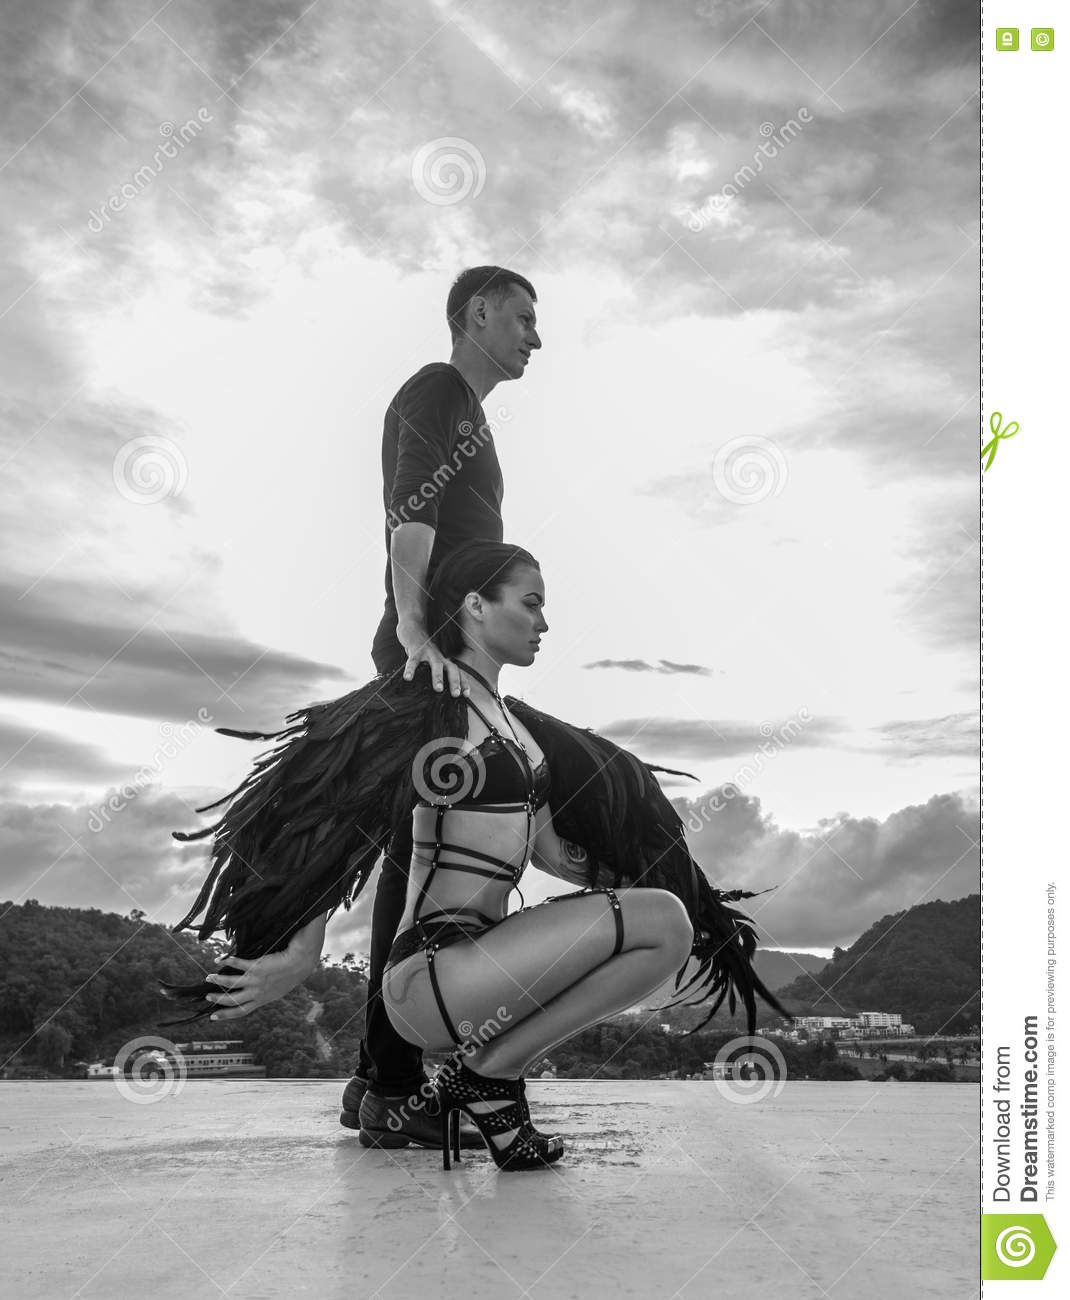 Black and white photo of romantic scene with men and sensual angel women standing on the rooftop over sky background